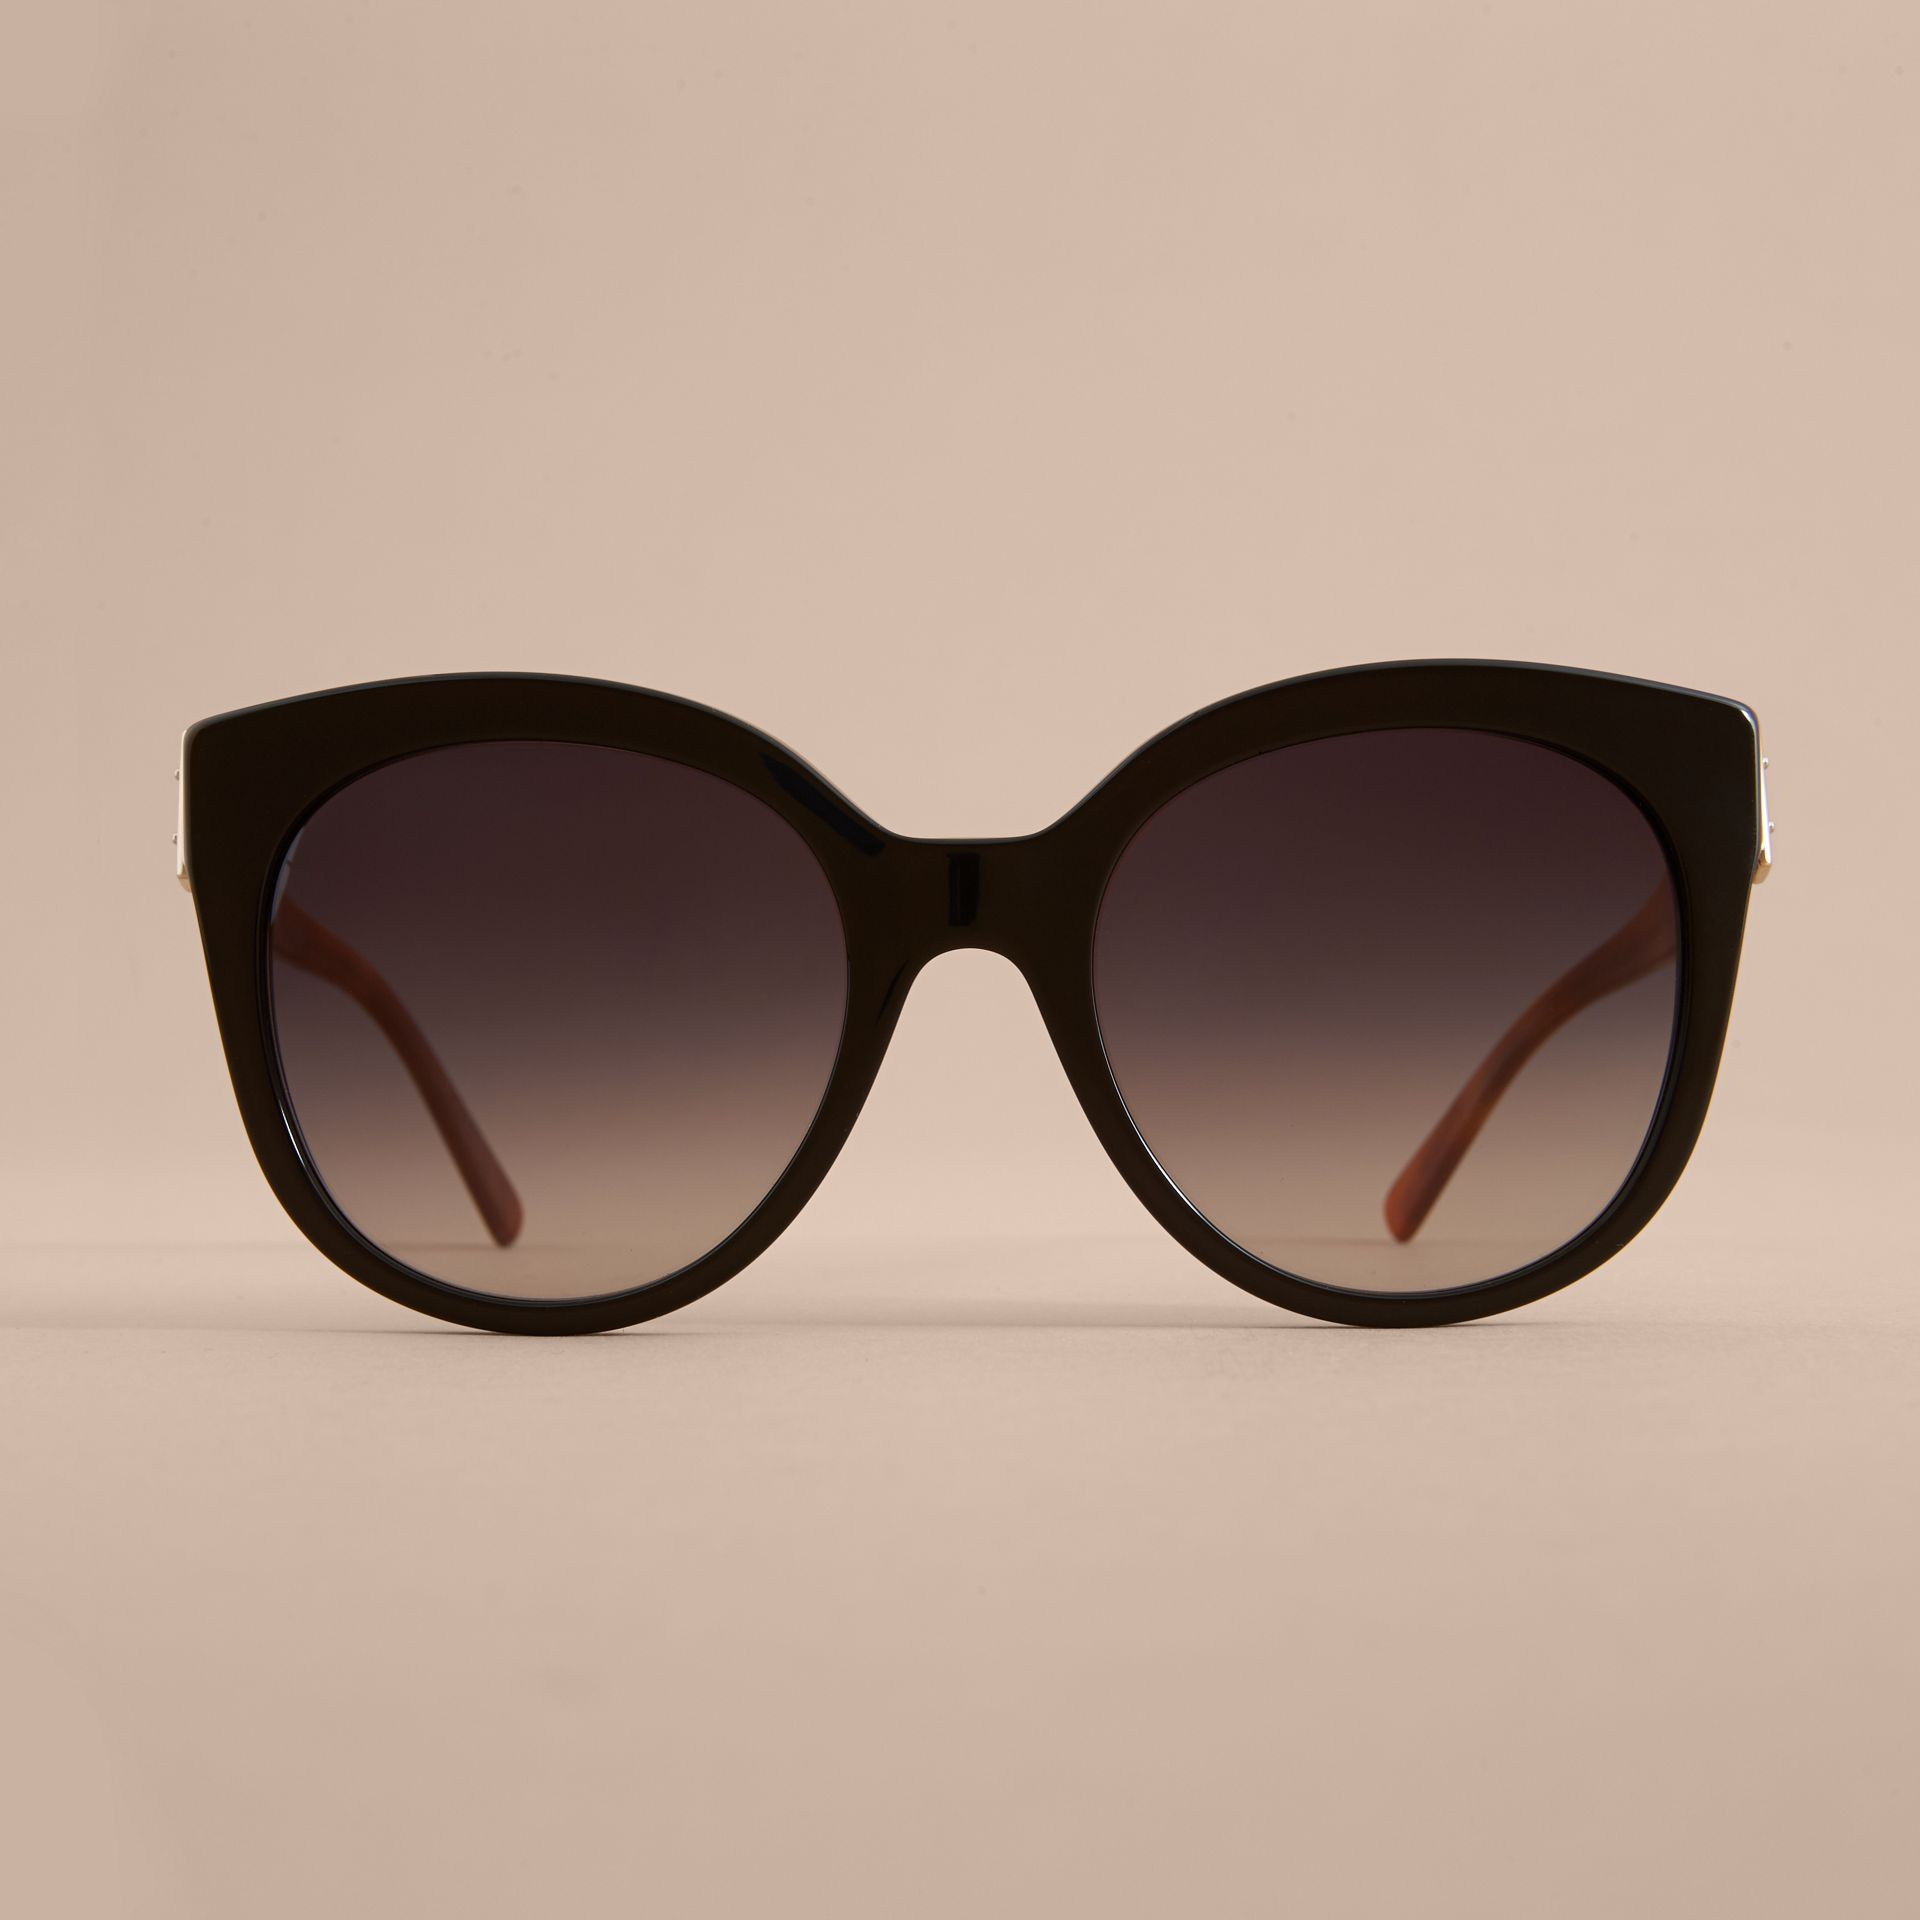 Buckle Detail Cat-eye Frame Sunglasses in Black - Women | Burberry Australia - gallery image 2